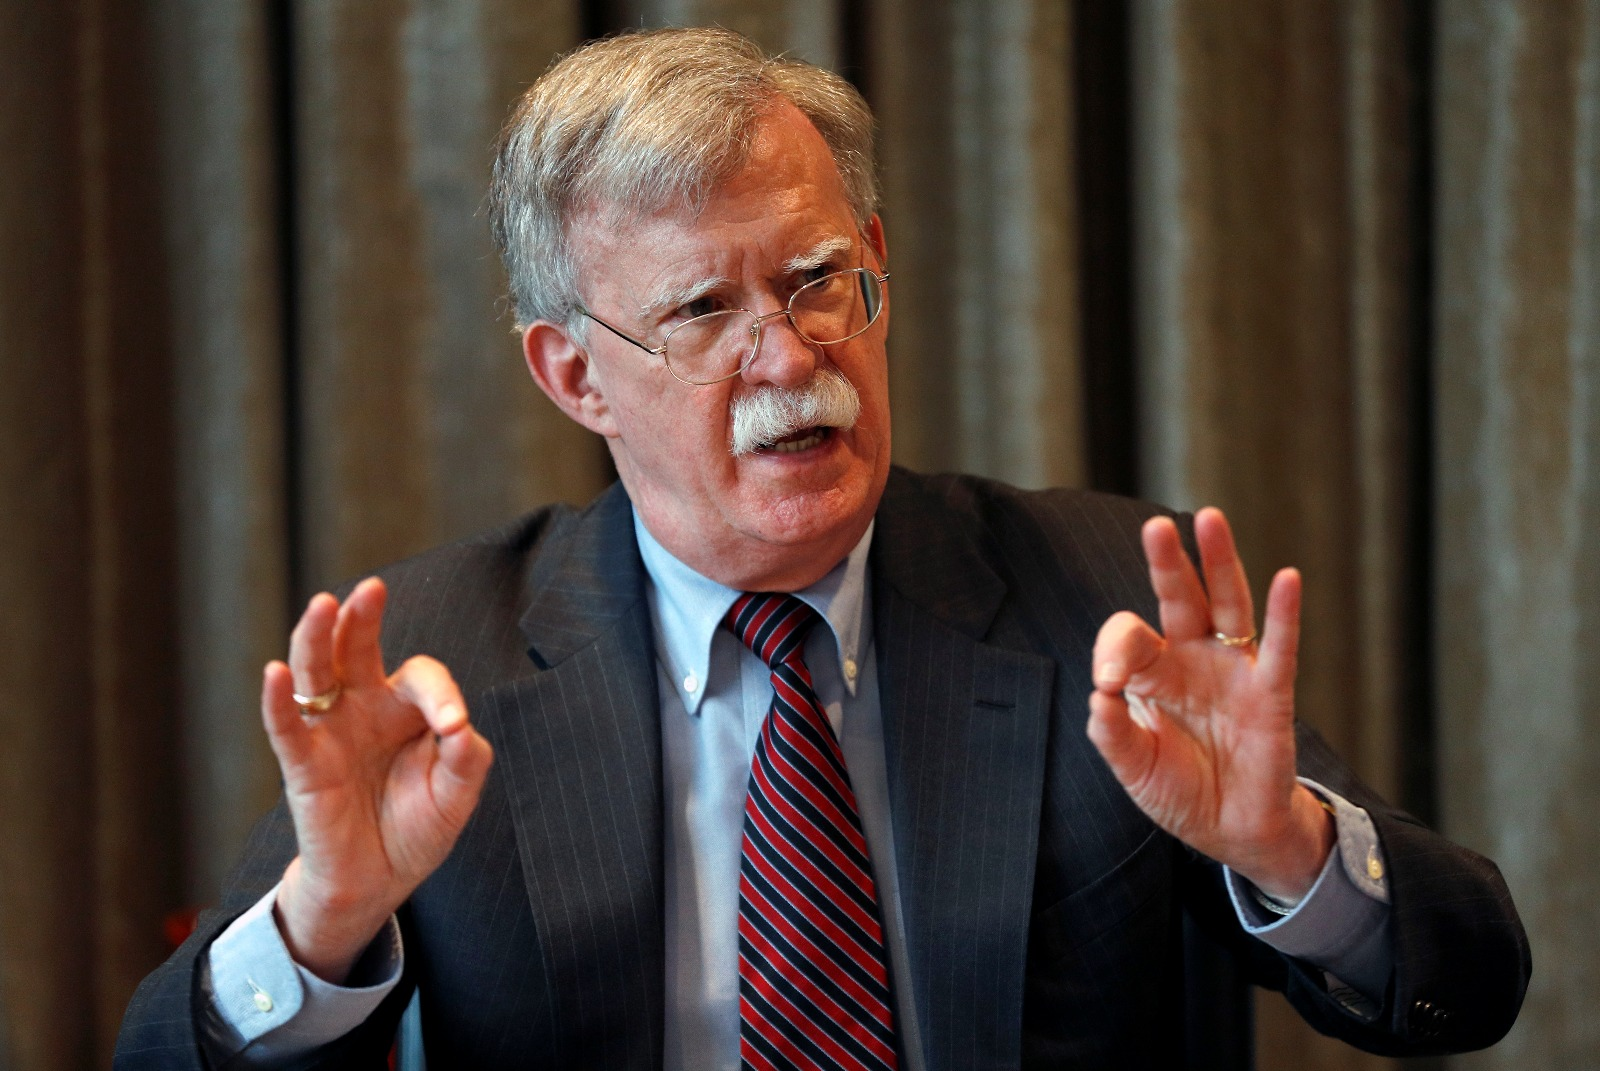 Why John Bolton Is Pushing Hard For Britain to Leave the European